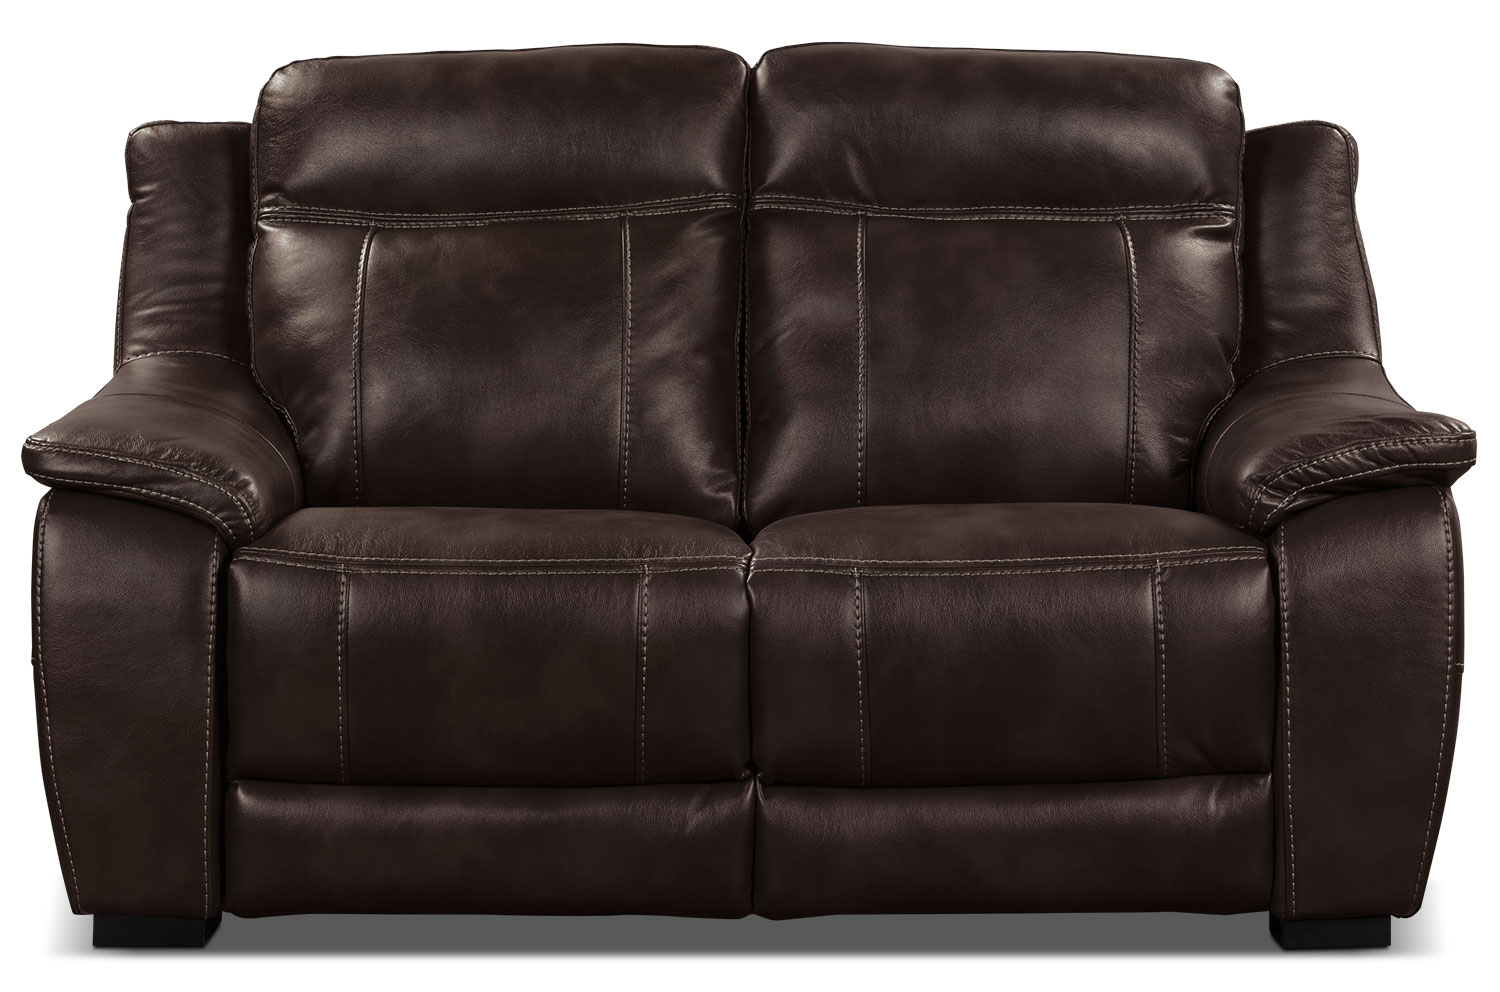 the brick cindy crawford reclining sofa mint green sectional novo leather look fabric loveseat  brown